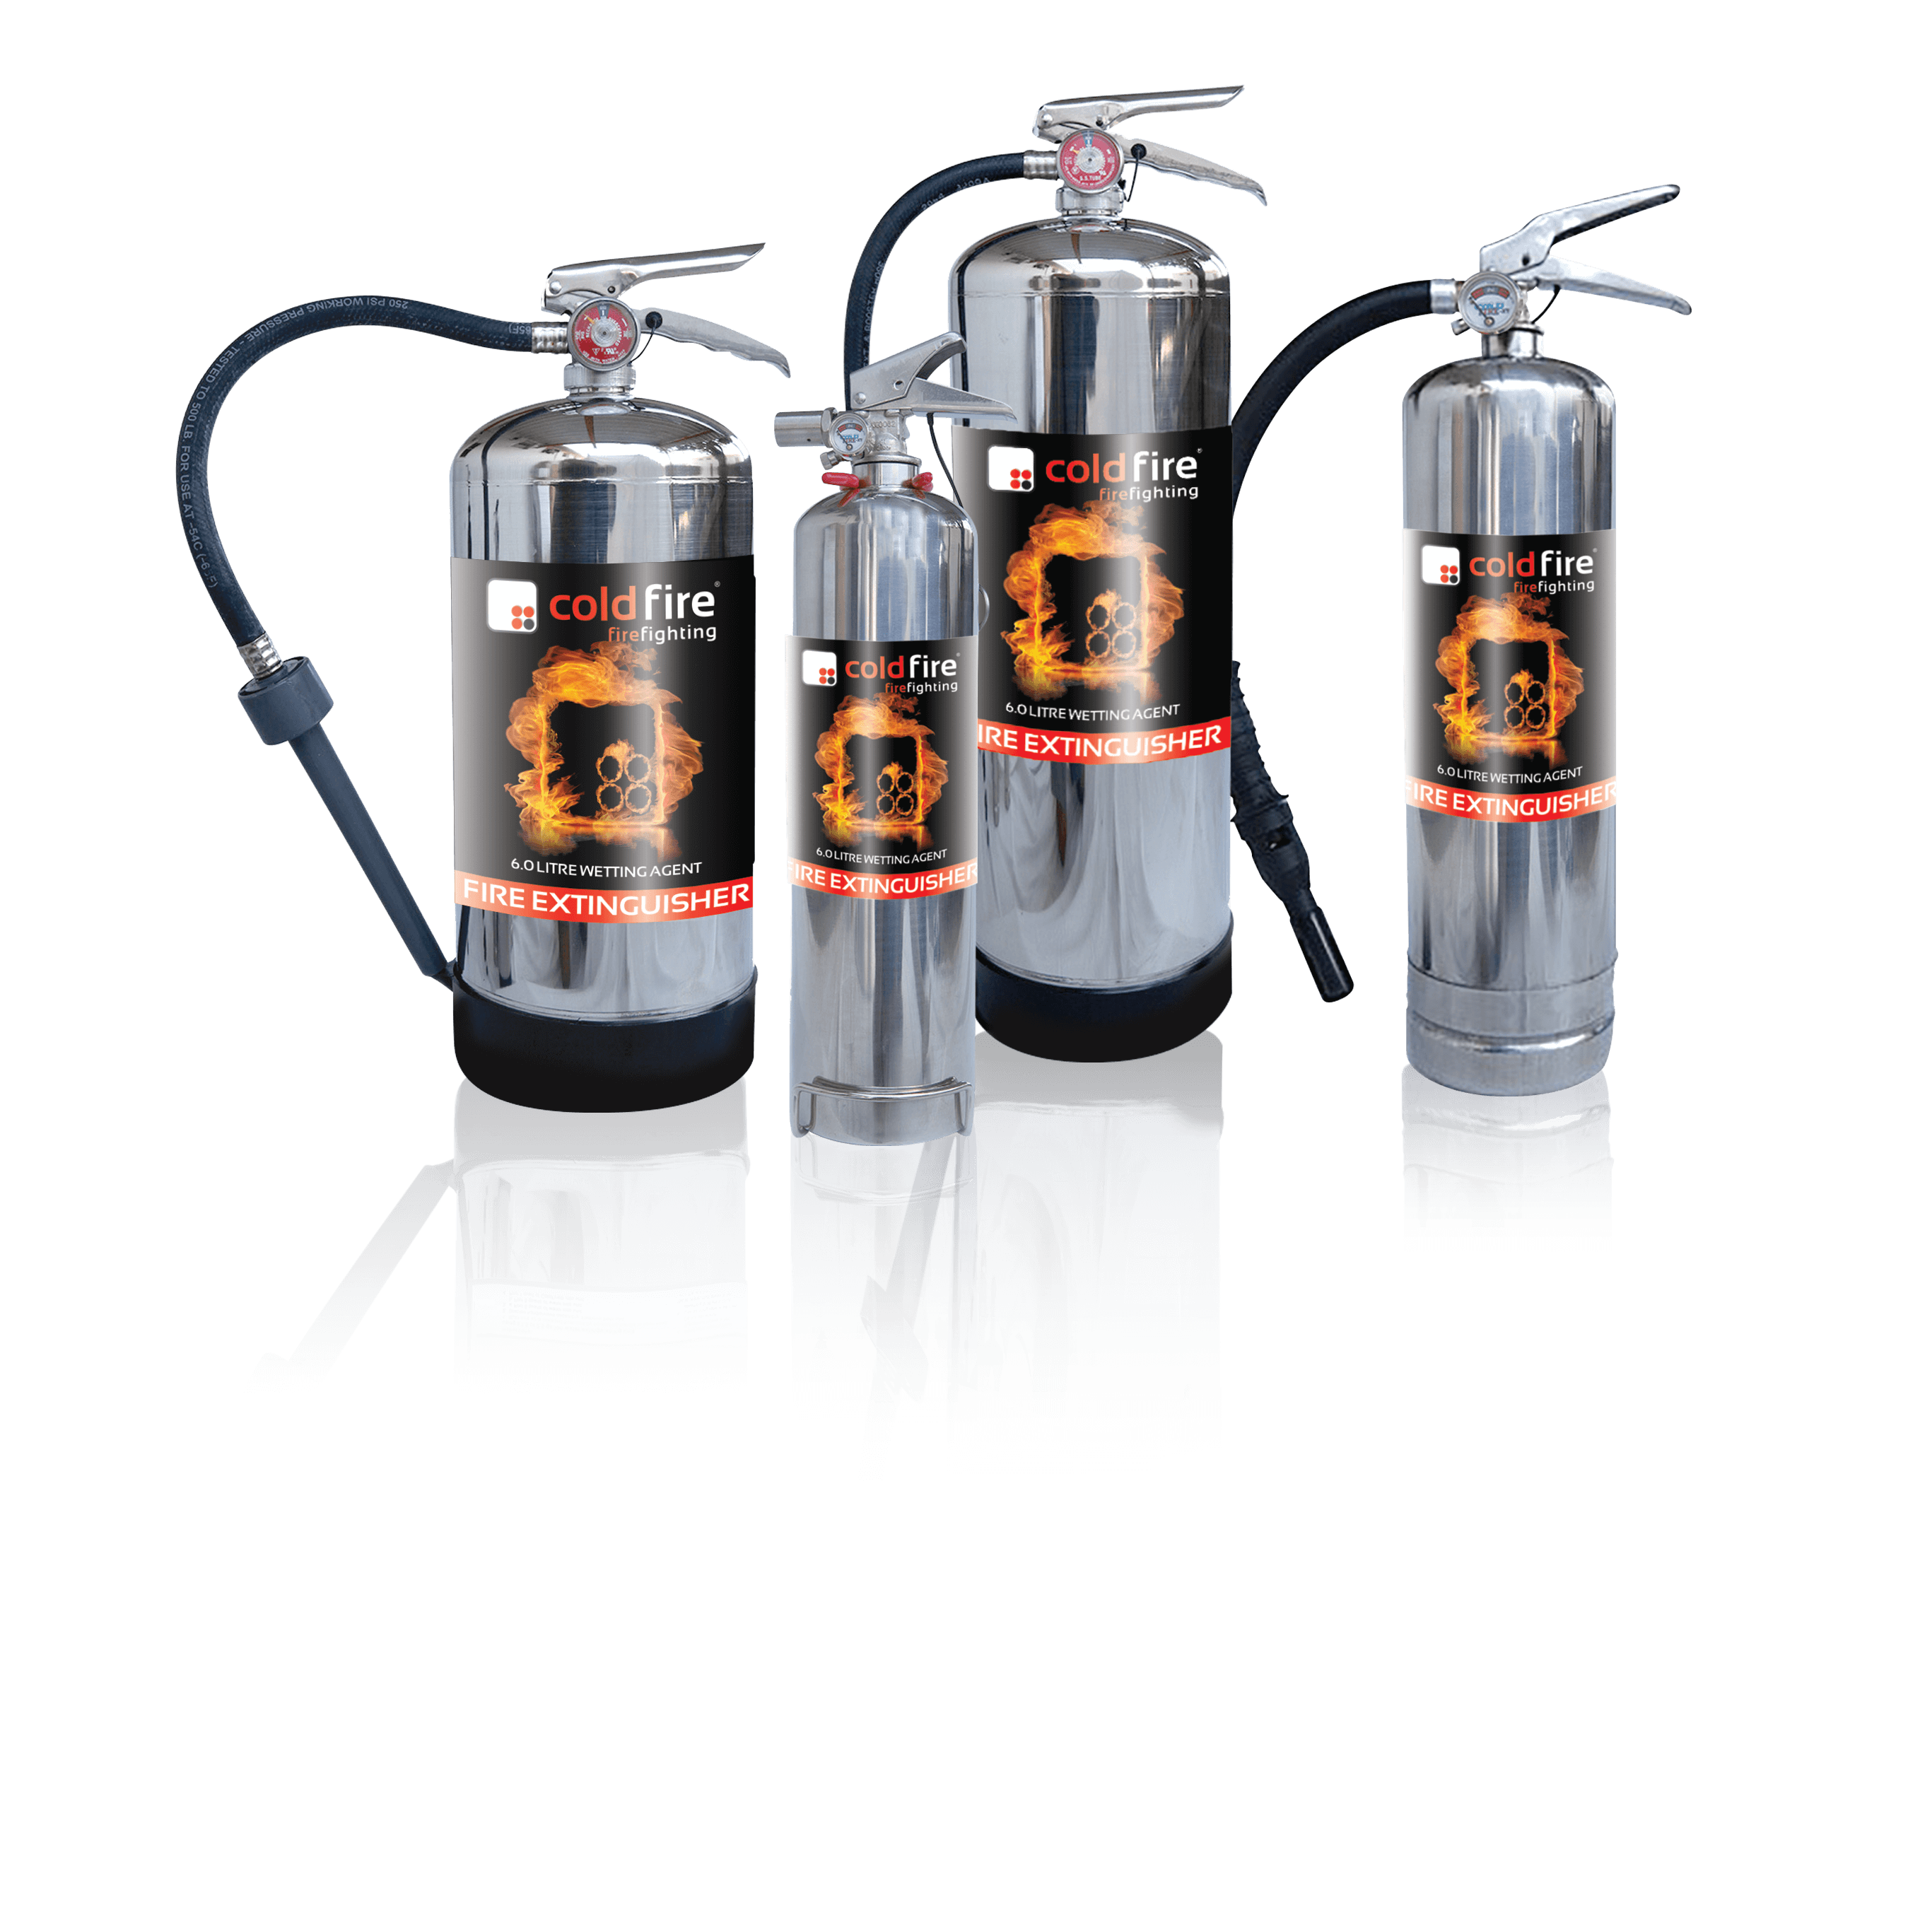 coldfire® firefighting products